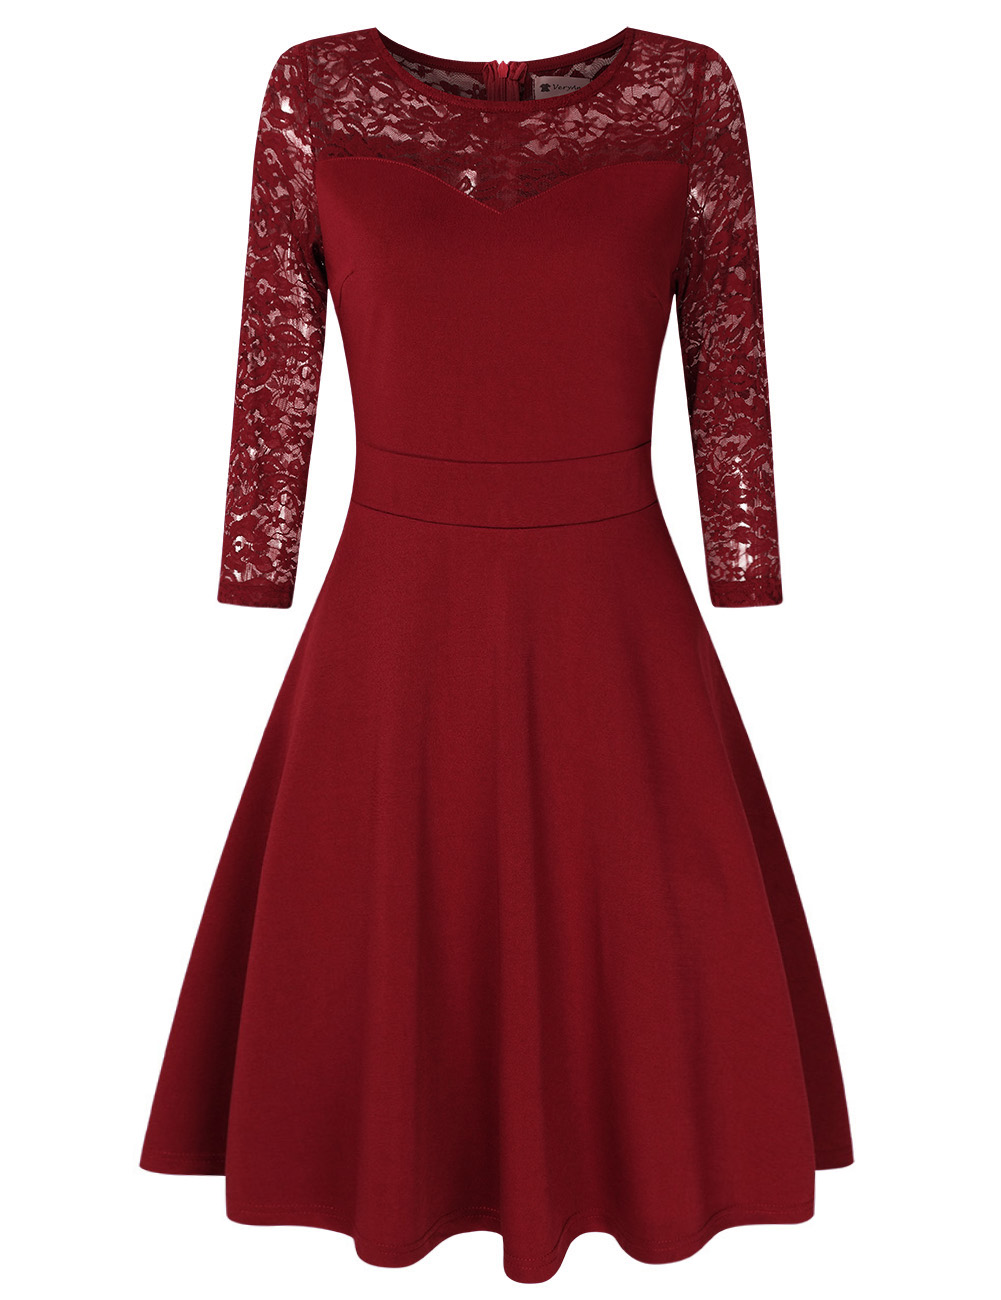 [US Direct] VeryAnn Women A Line Cocktail Dress Empire Lace Fit and Flare Dress Red wine_XXL